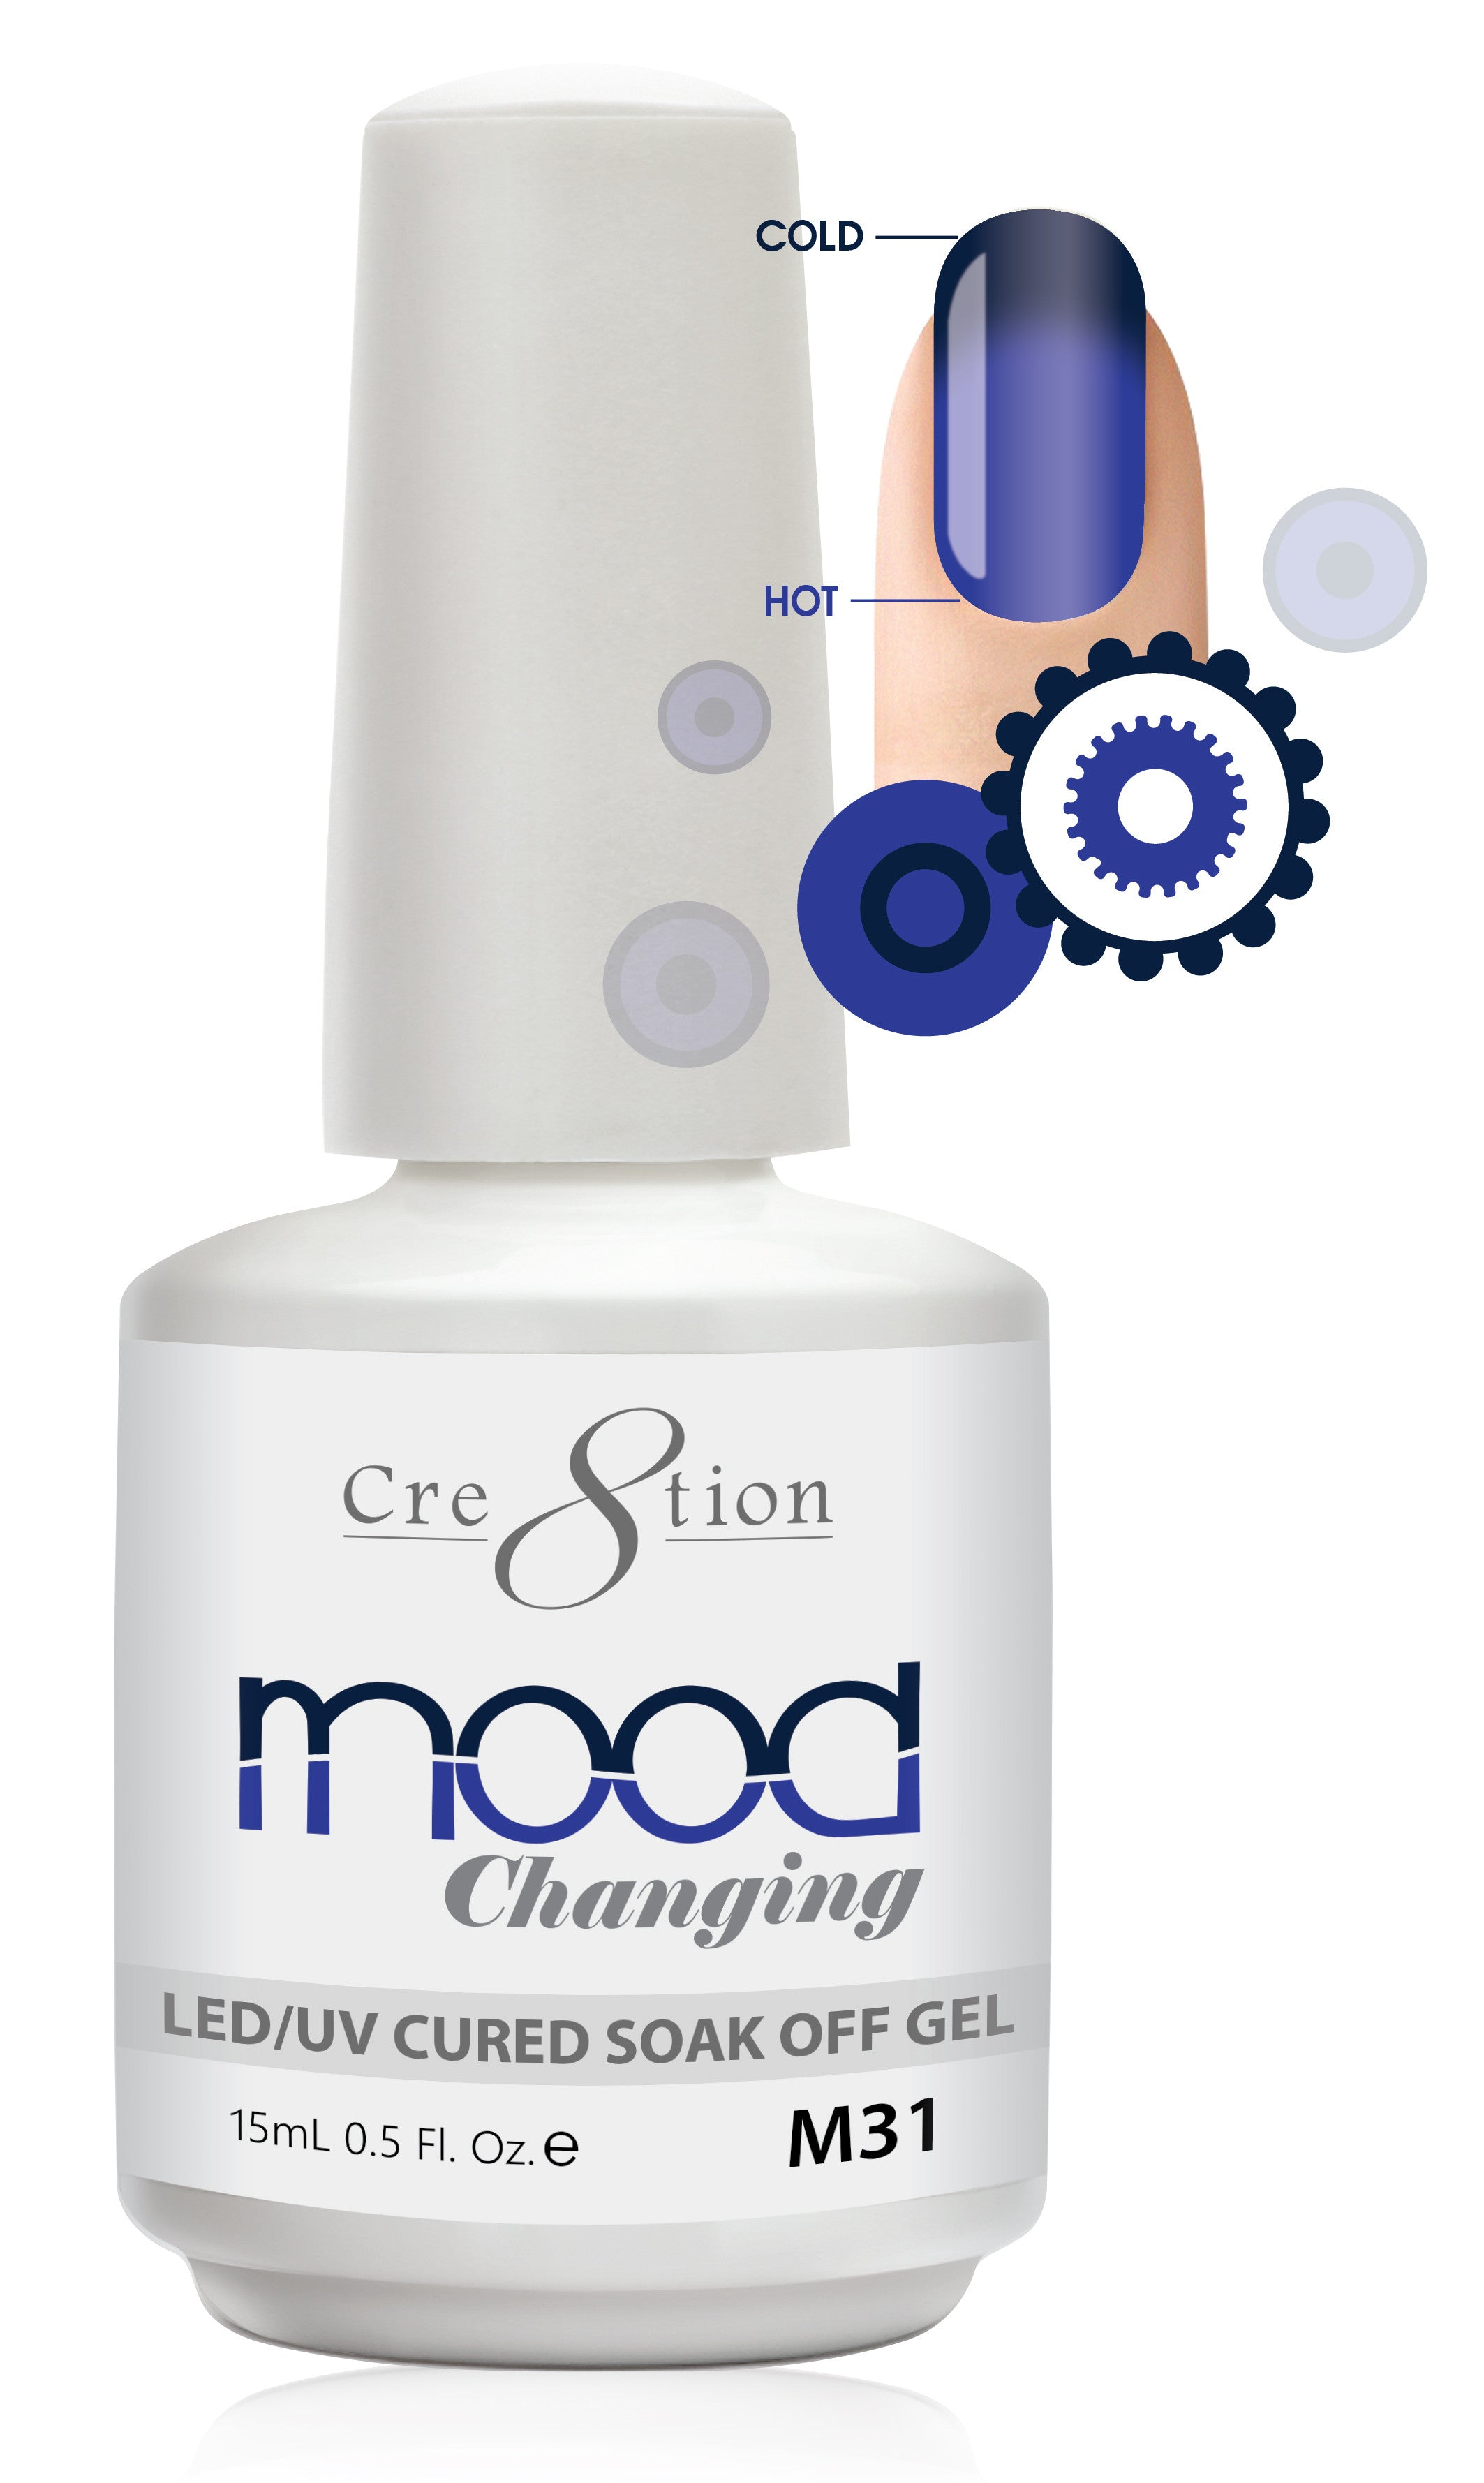 Cre8tion Mood Changing Soak Off Gel M31-Creamy